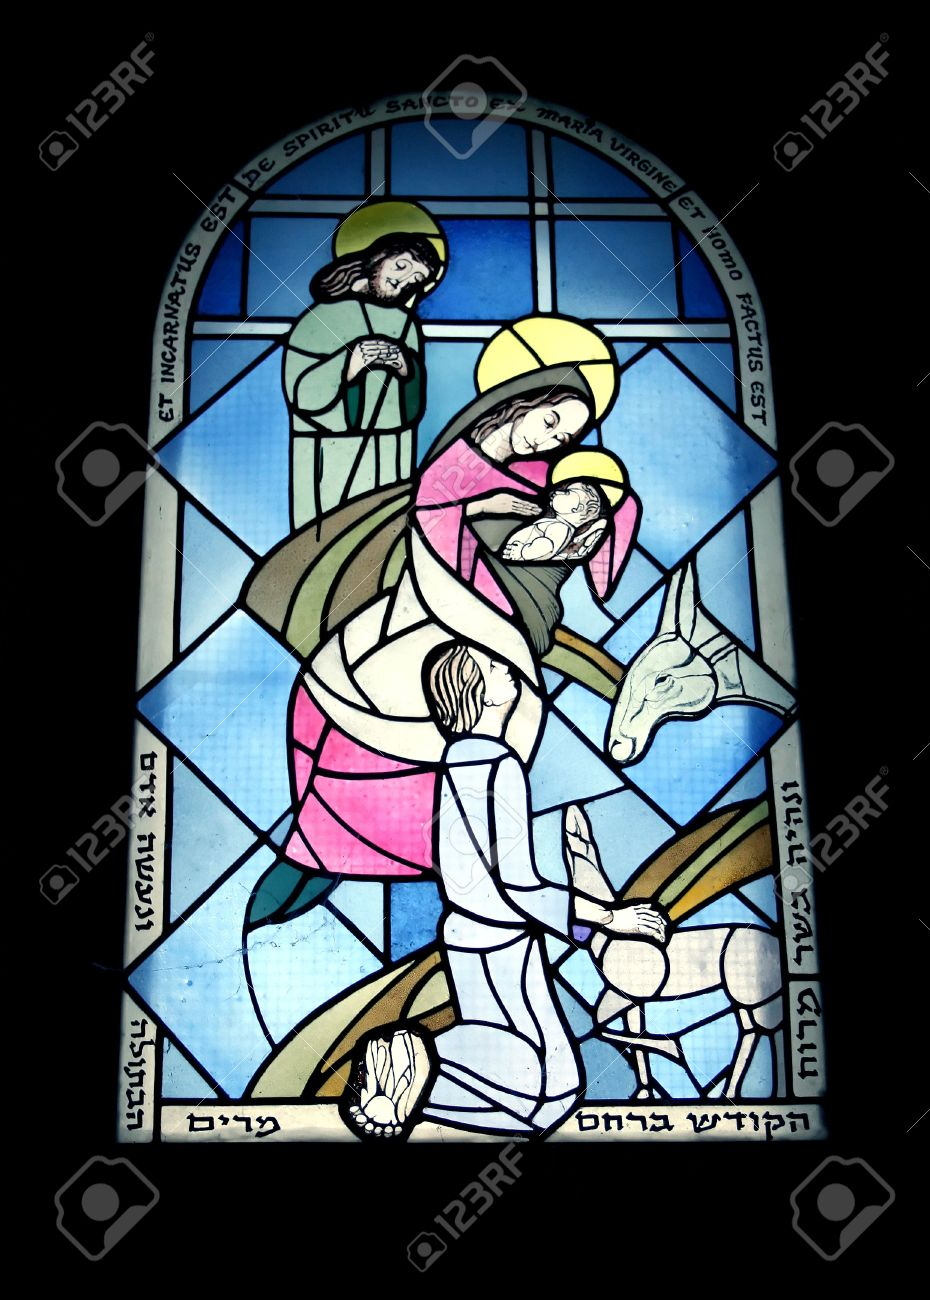 Stained glass window in the monastery of benedictines  19th century of baby Jesus, Mary, and Joseph in the manger with the animals. Stock Photo - 6179839